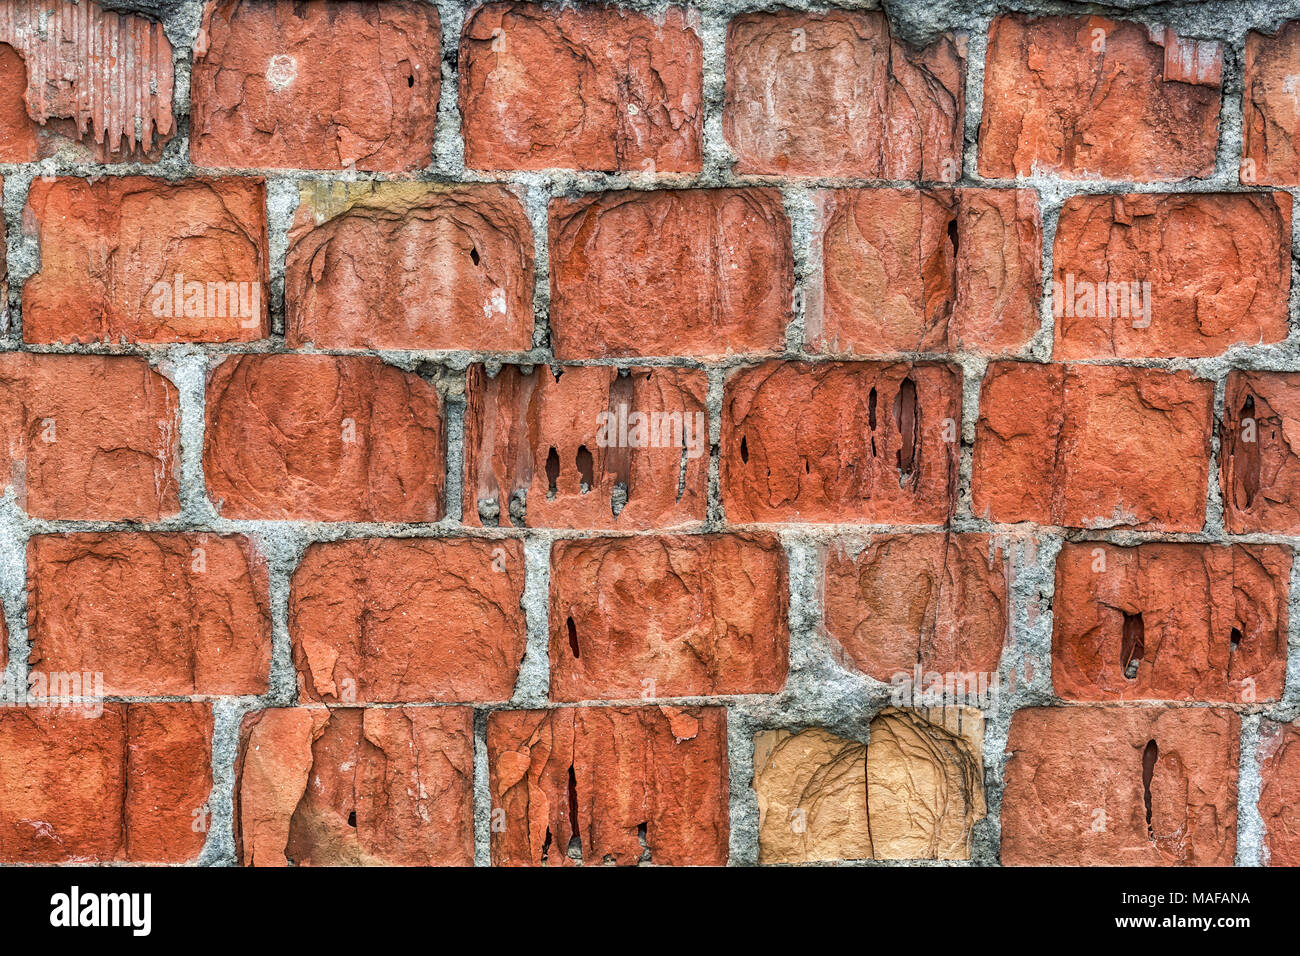 A red brick wall used for the construction of buildings. This photo is abstract and can serve as wallpaper. - Stock Image